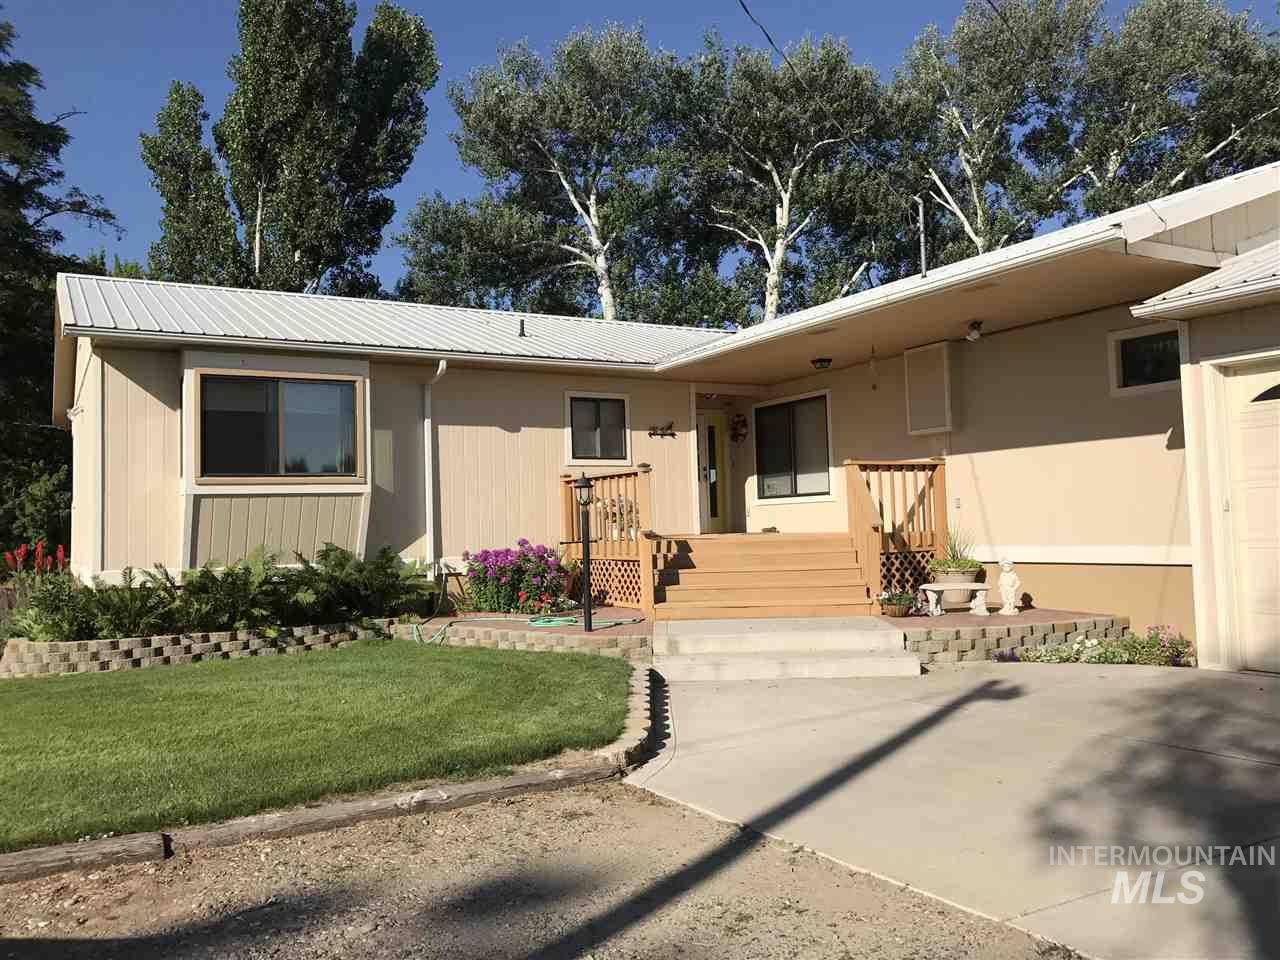 Single Family Home for Sale at 1925 S 2000 E 1925 S 2000 E Gooding, Idaho 83330